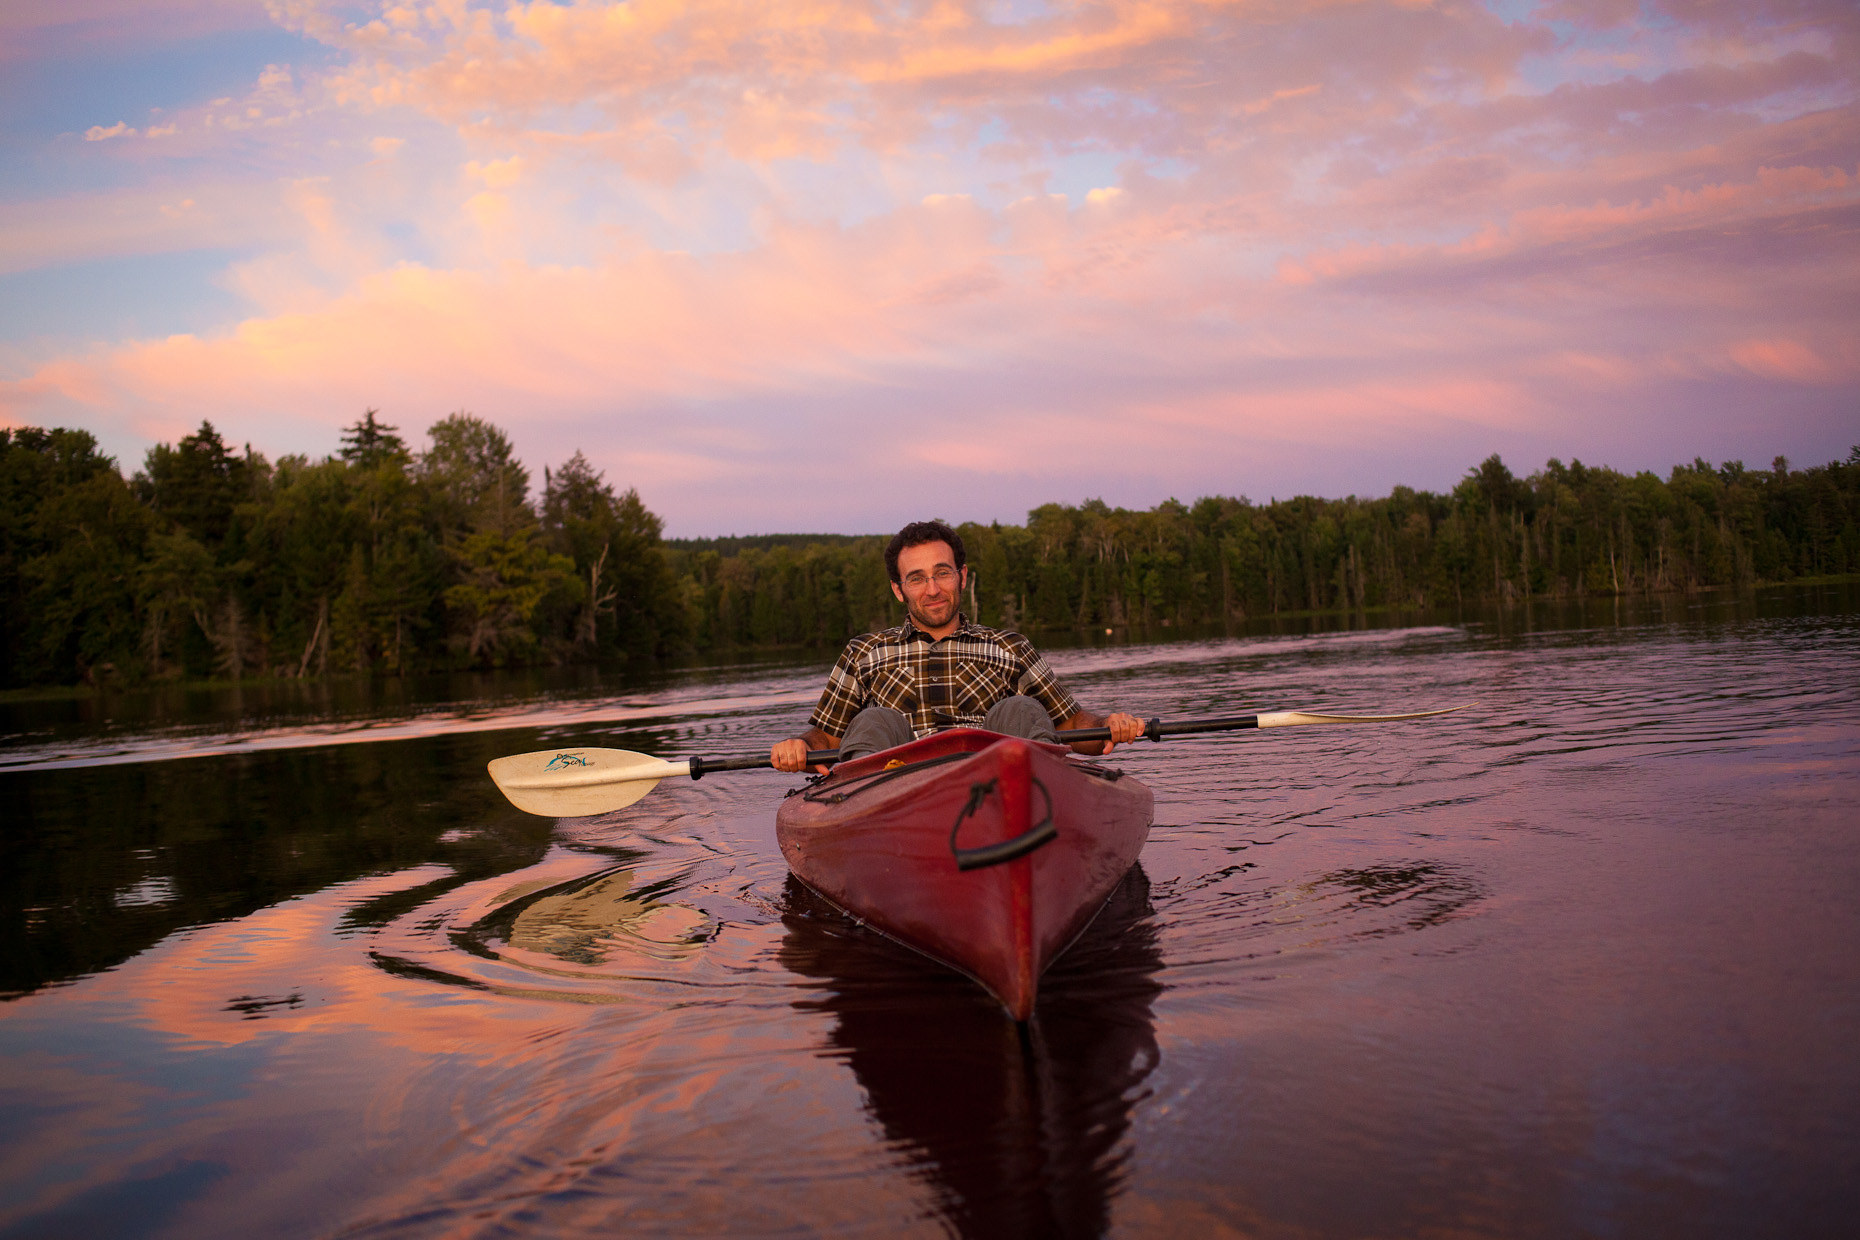 Adirondacks_Kayaking_Lake.JPG